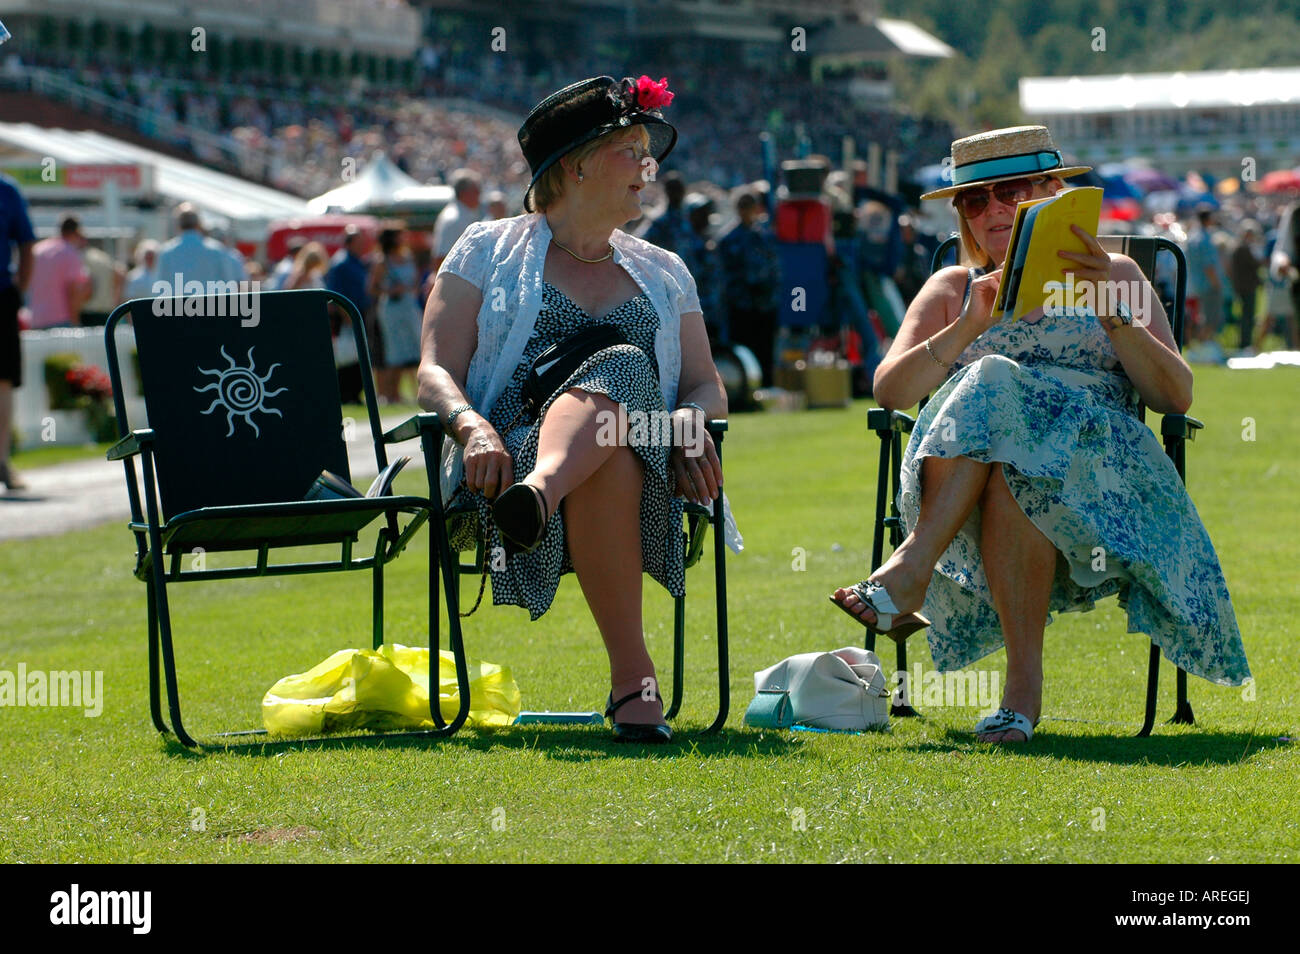 Two ladies enjoying the atmosphere at the Glorious Goodwood race meeting Picture by Andrew Hasson July 31st 2007 - Stock Image